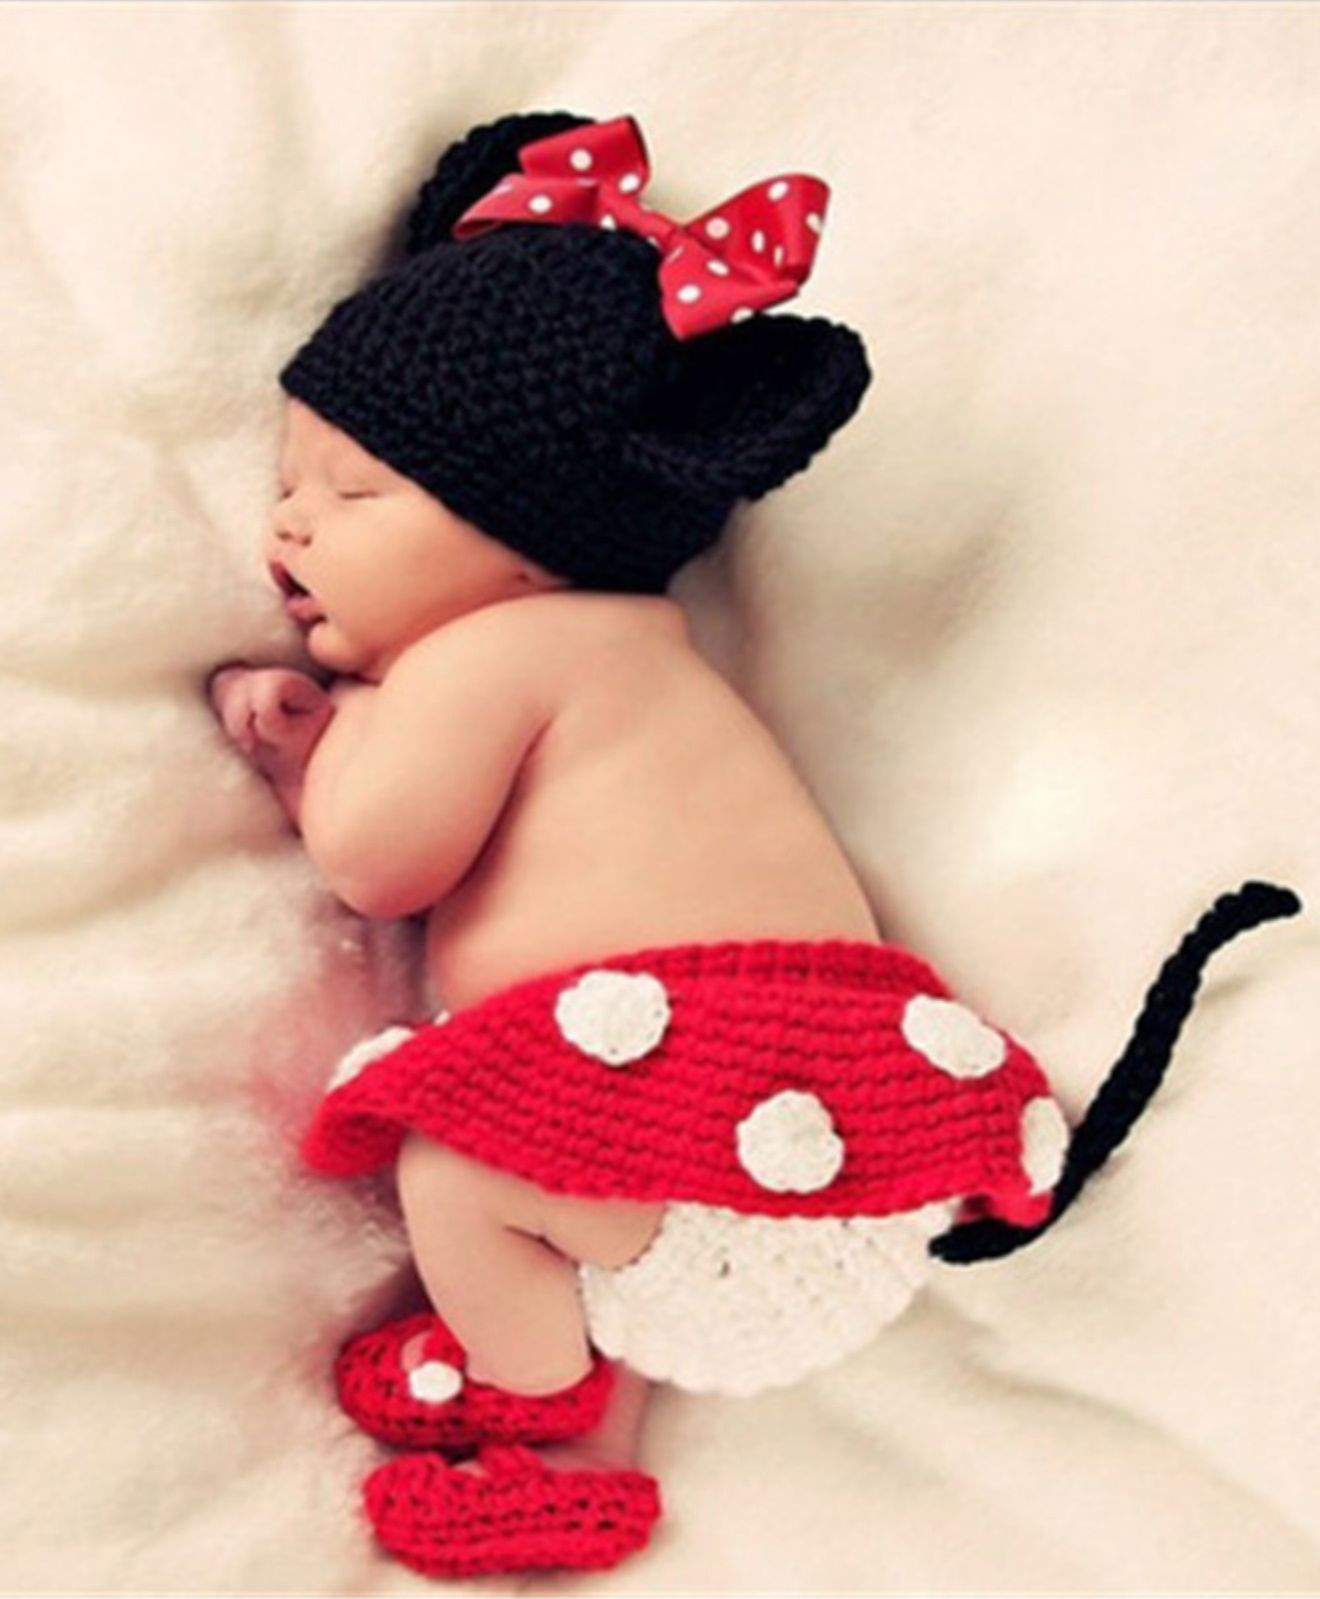 d81a1dd1b Babymoon Minnie Mouse Designer New Born Baby Photography Props Set of 4 -  Red